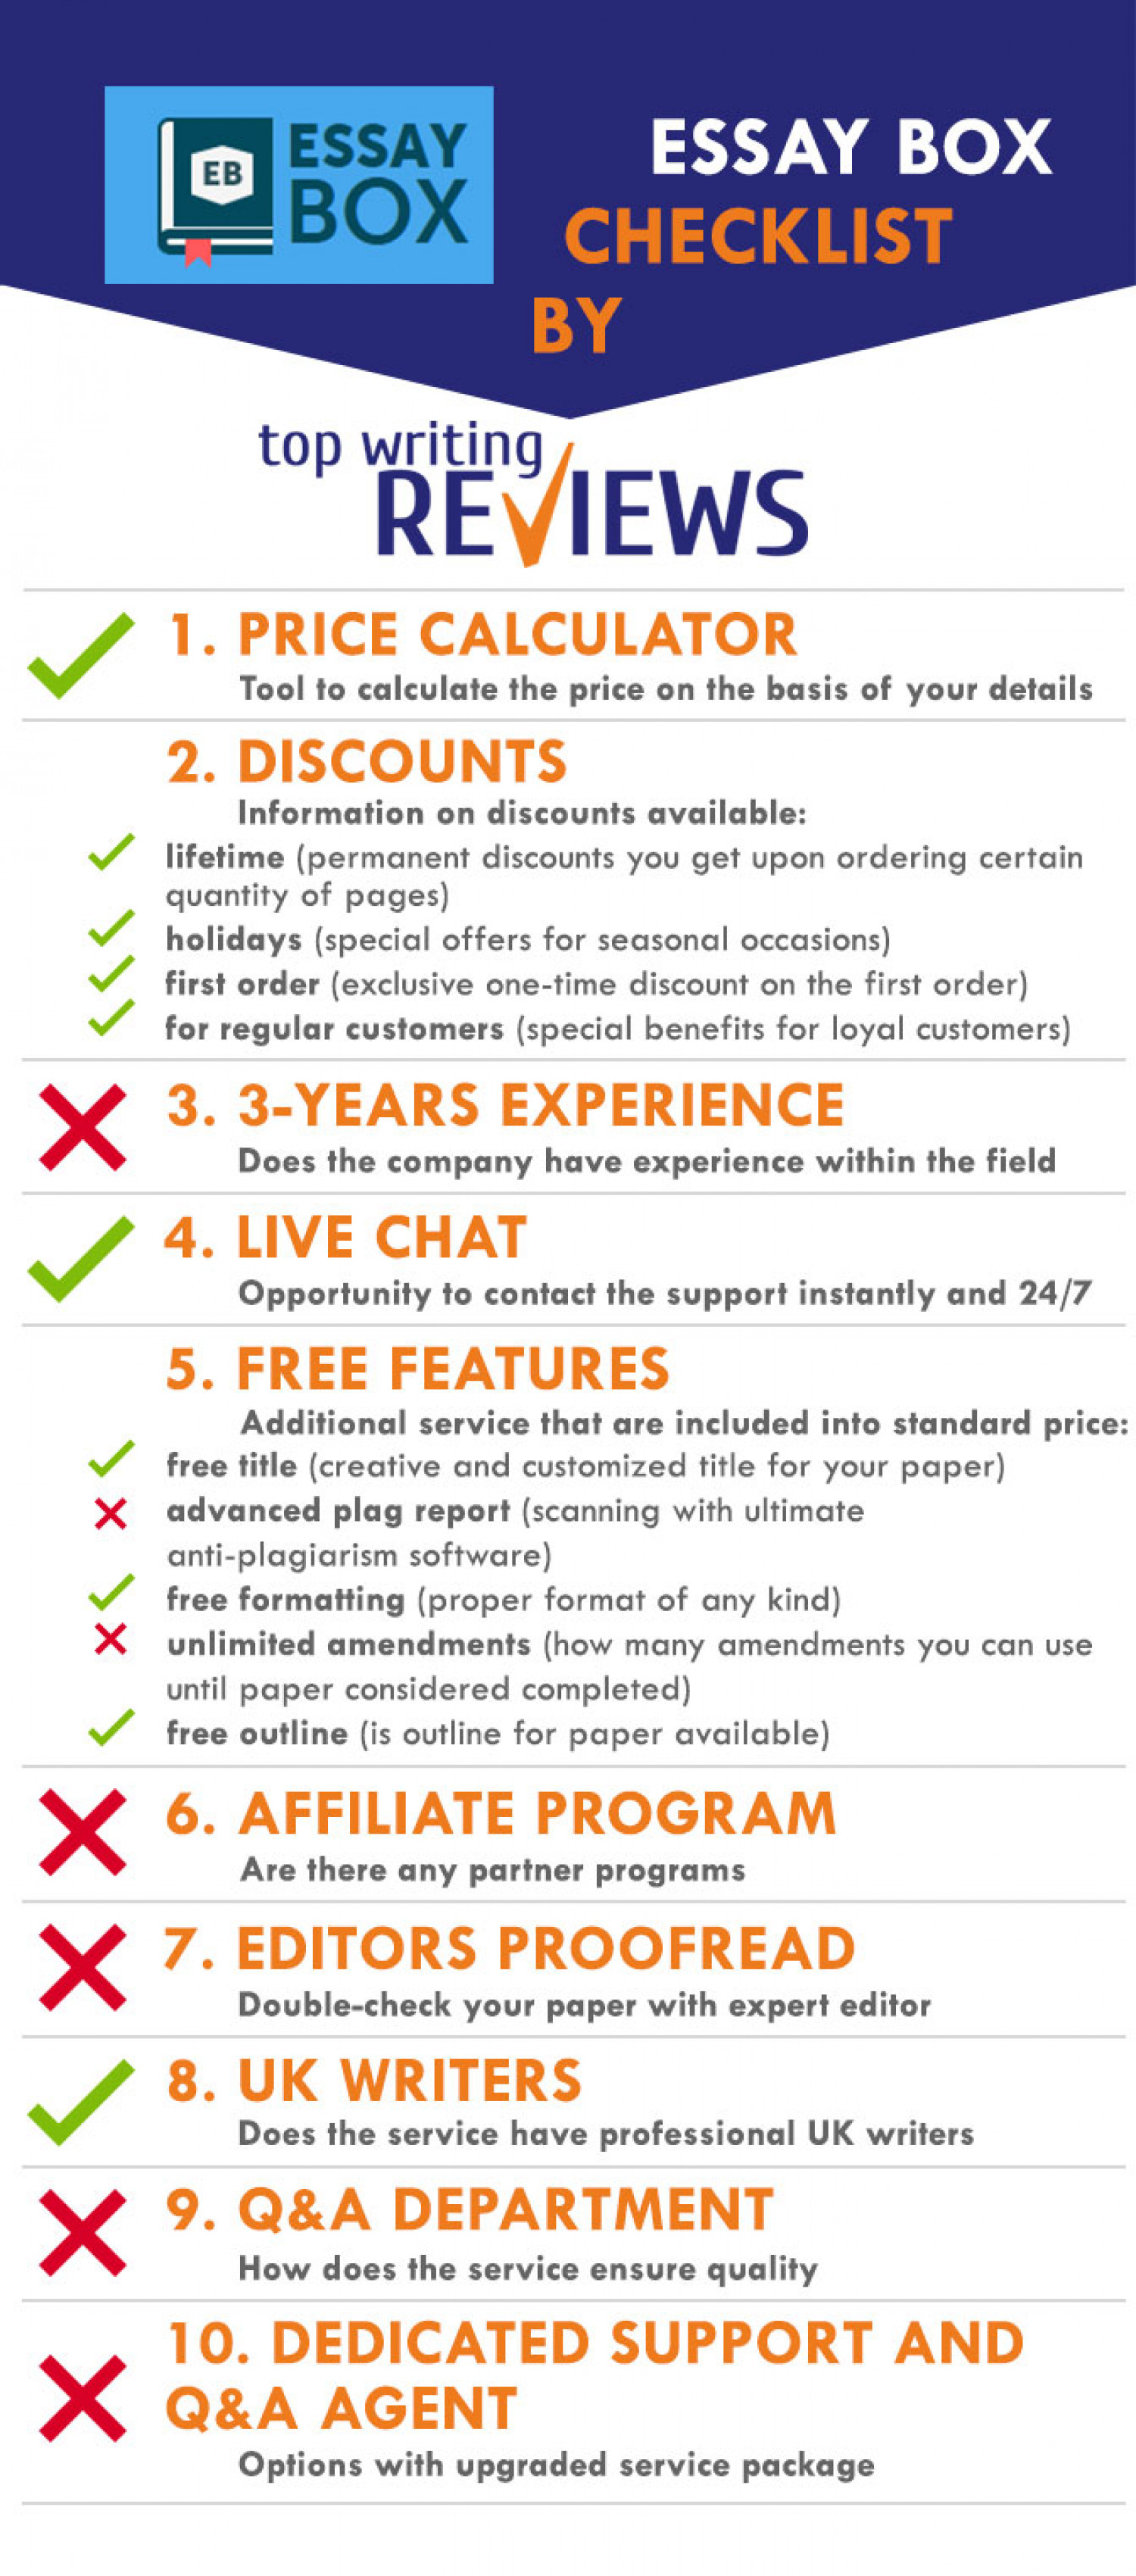 List of features and services of EssayBox company by TopWritingReviews Infographic